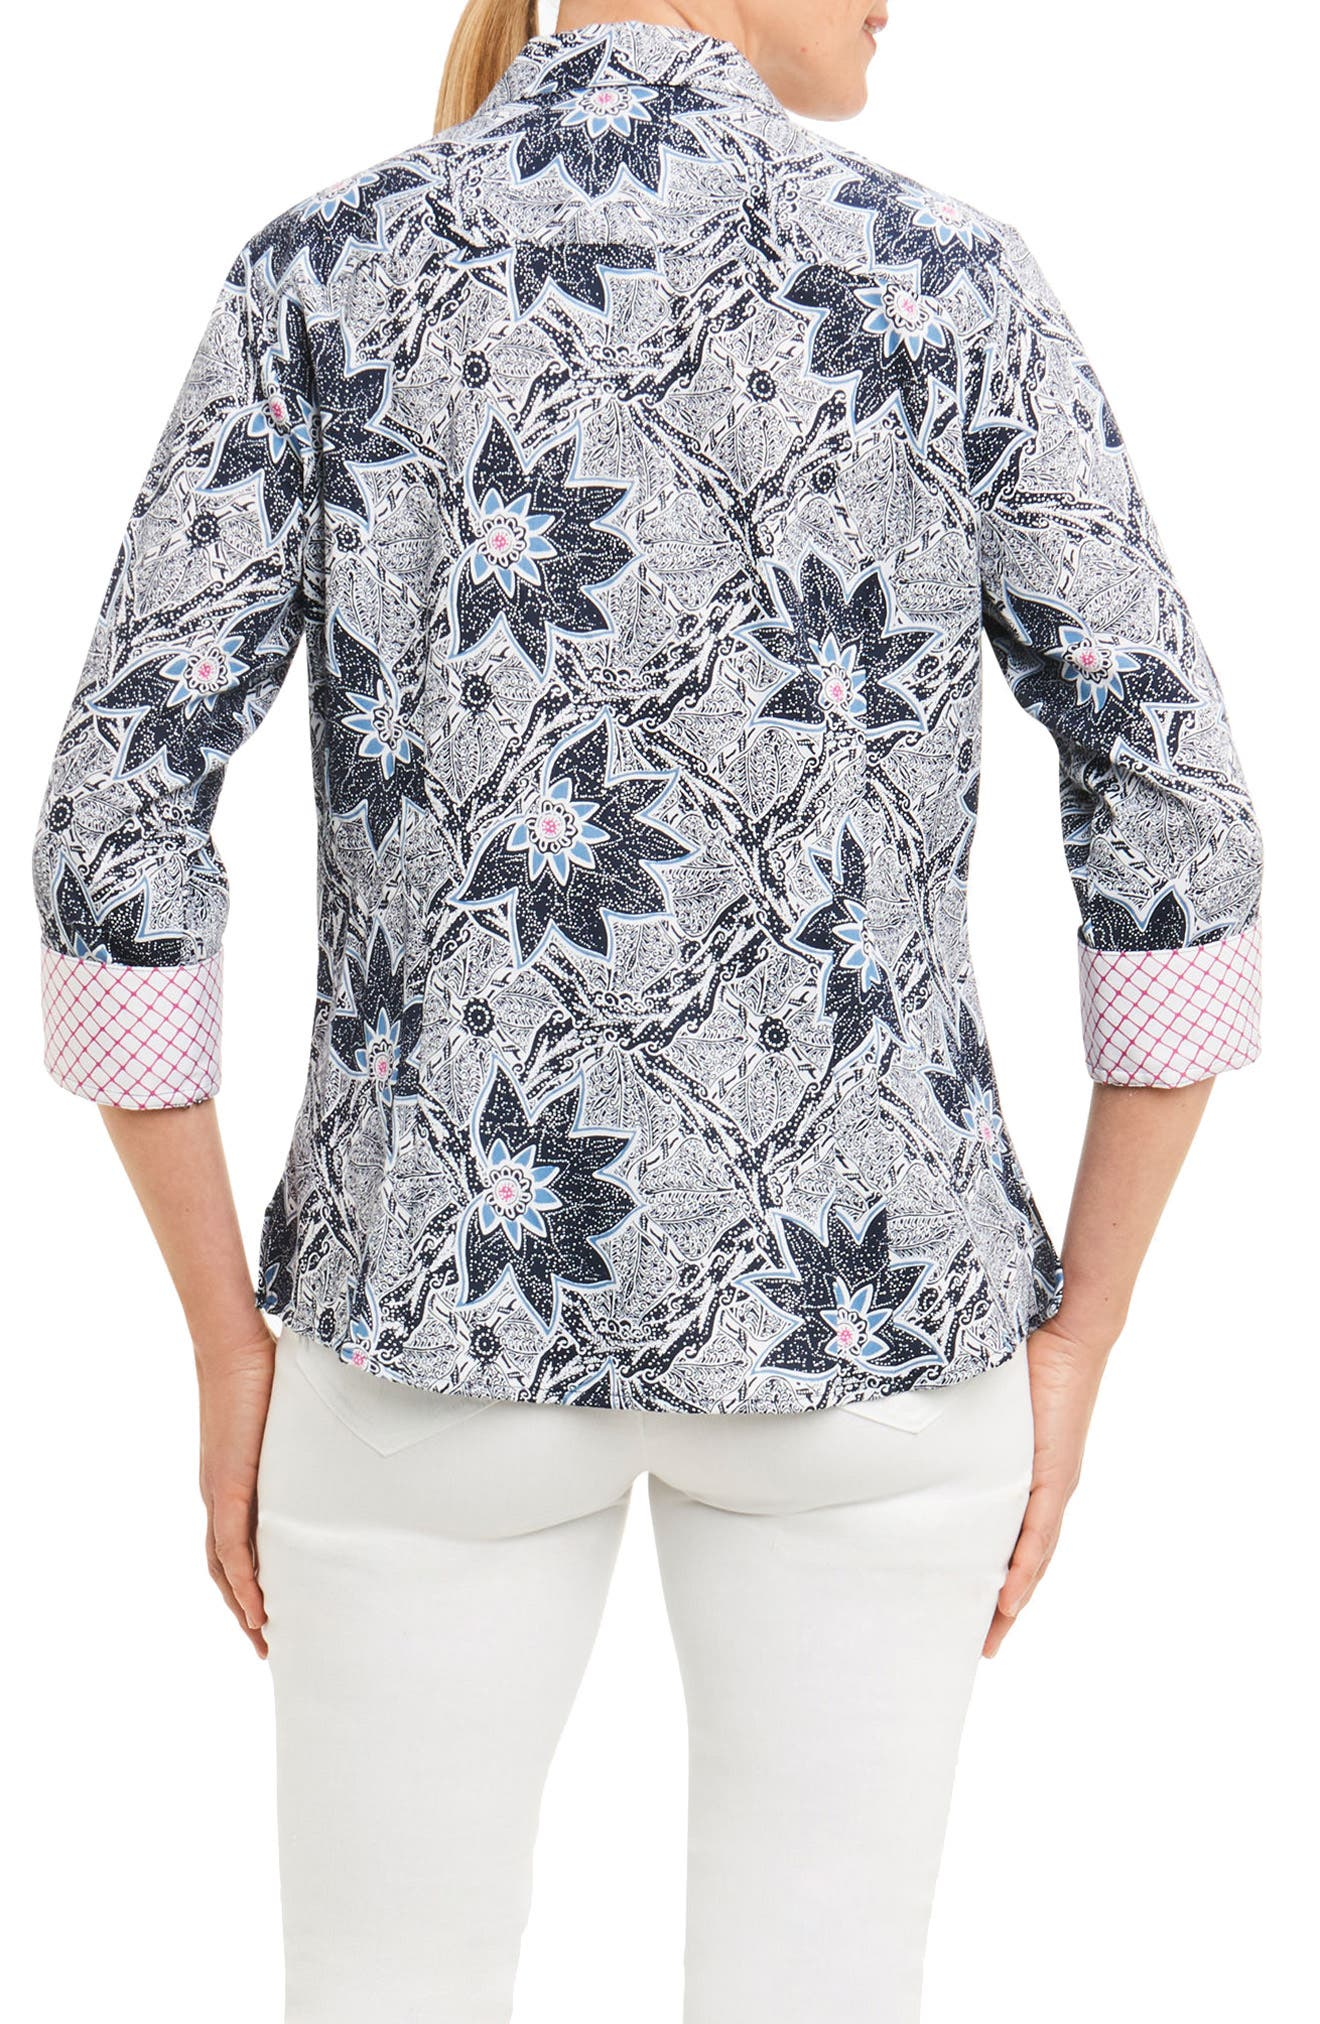 Taylor Summer Floral Shirt,                             Alternate thumbnail 2, color,                             462